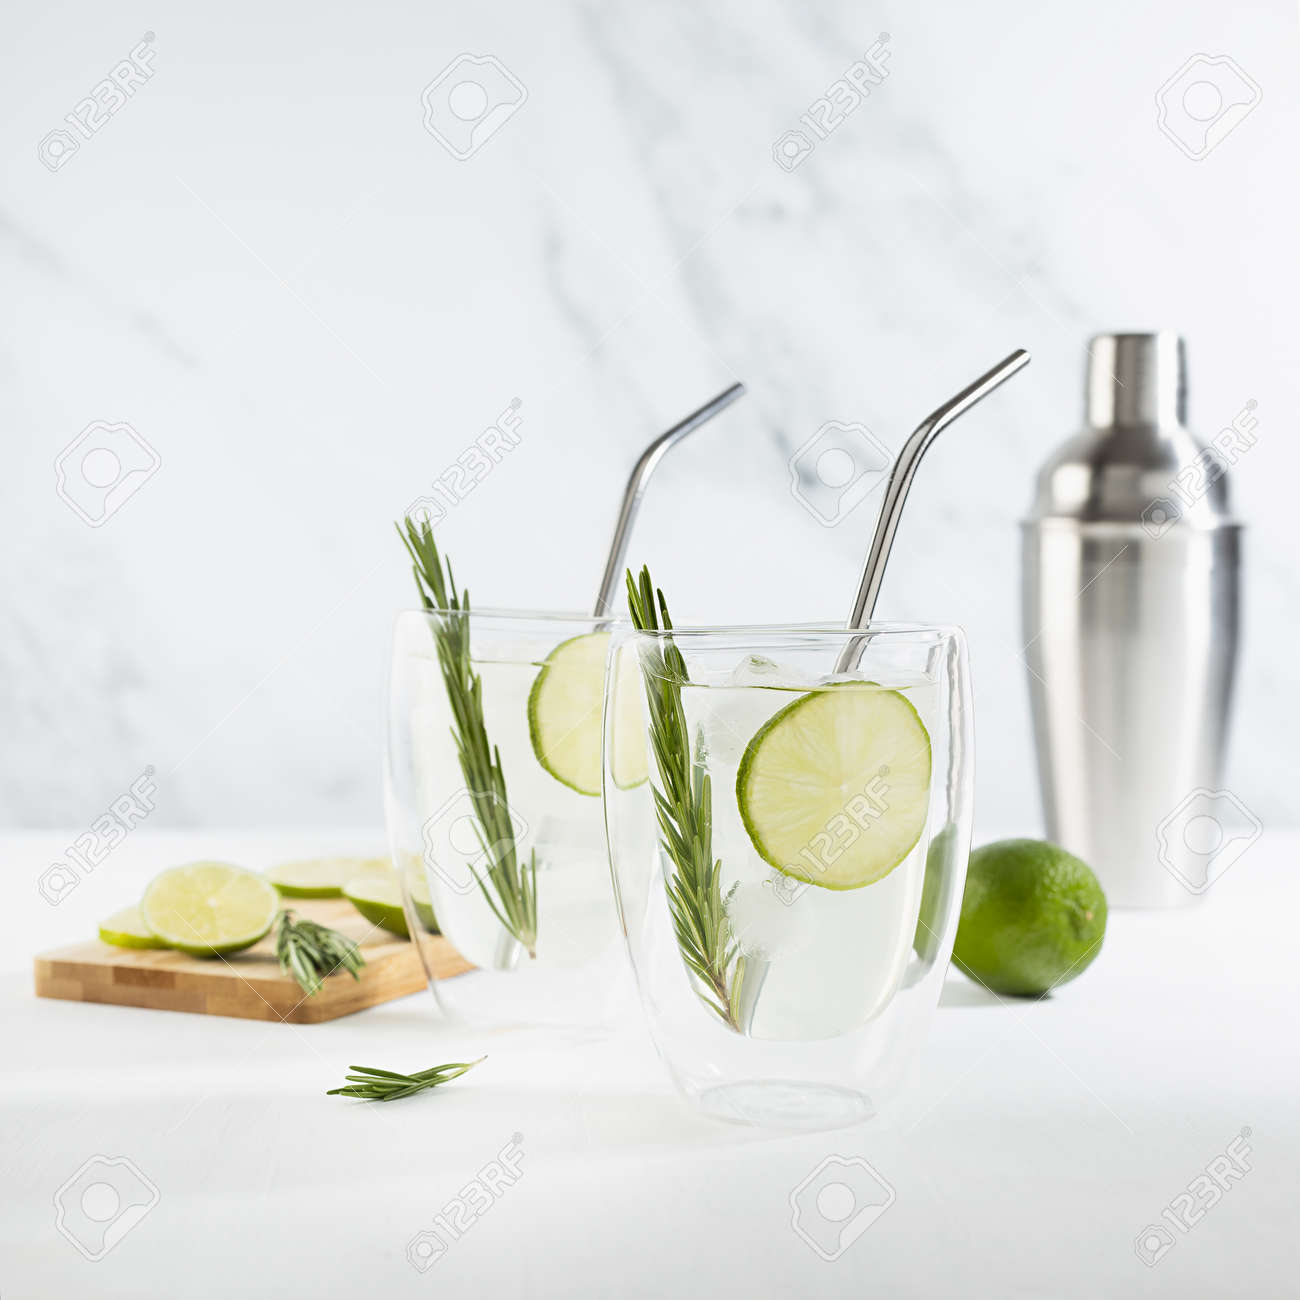 Organic mojito cocktail cooking with citrus fruit slices, ice cubes, green rosemary twig, ingredients, silver shaker, straws, cut board in two transparent mugs on white wood table, marble wall. - 173589720